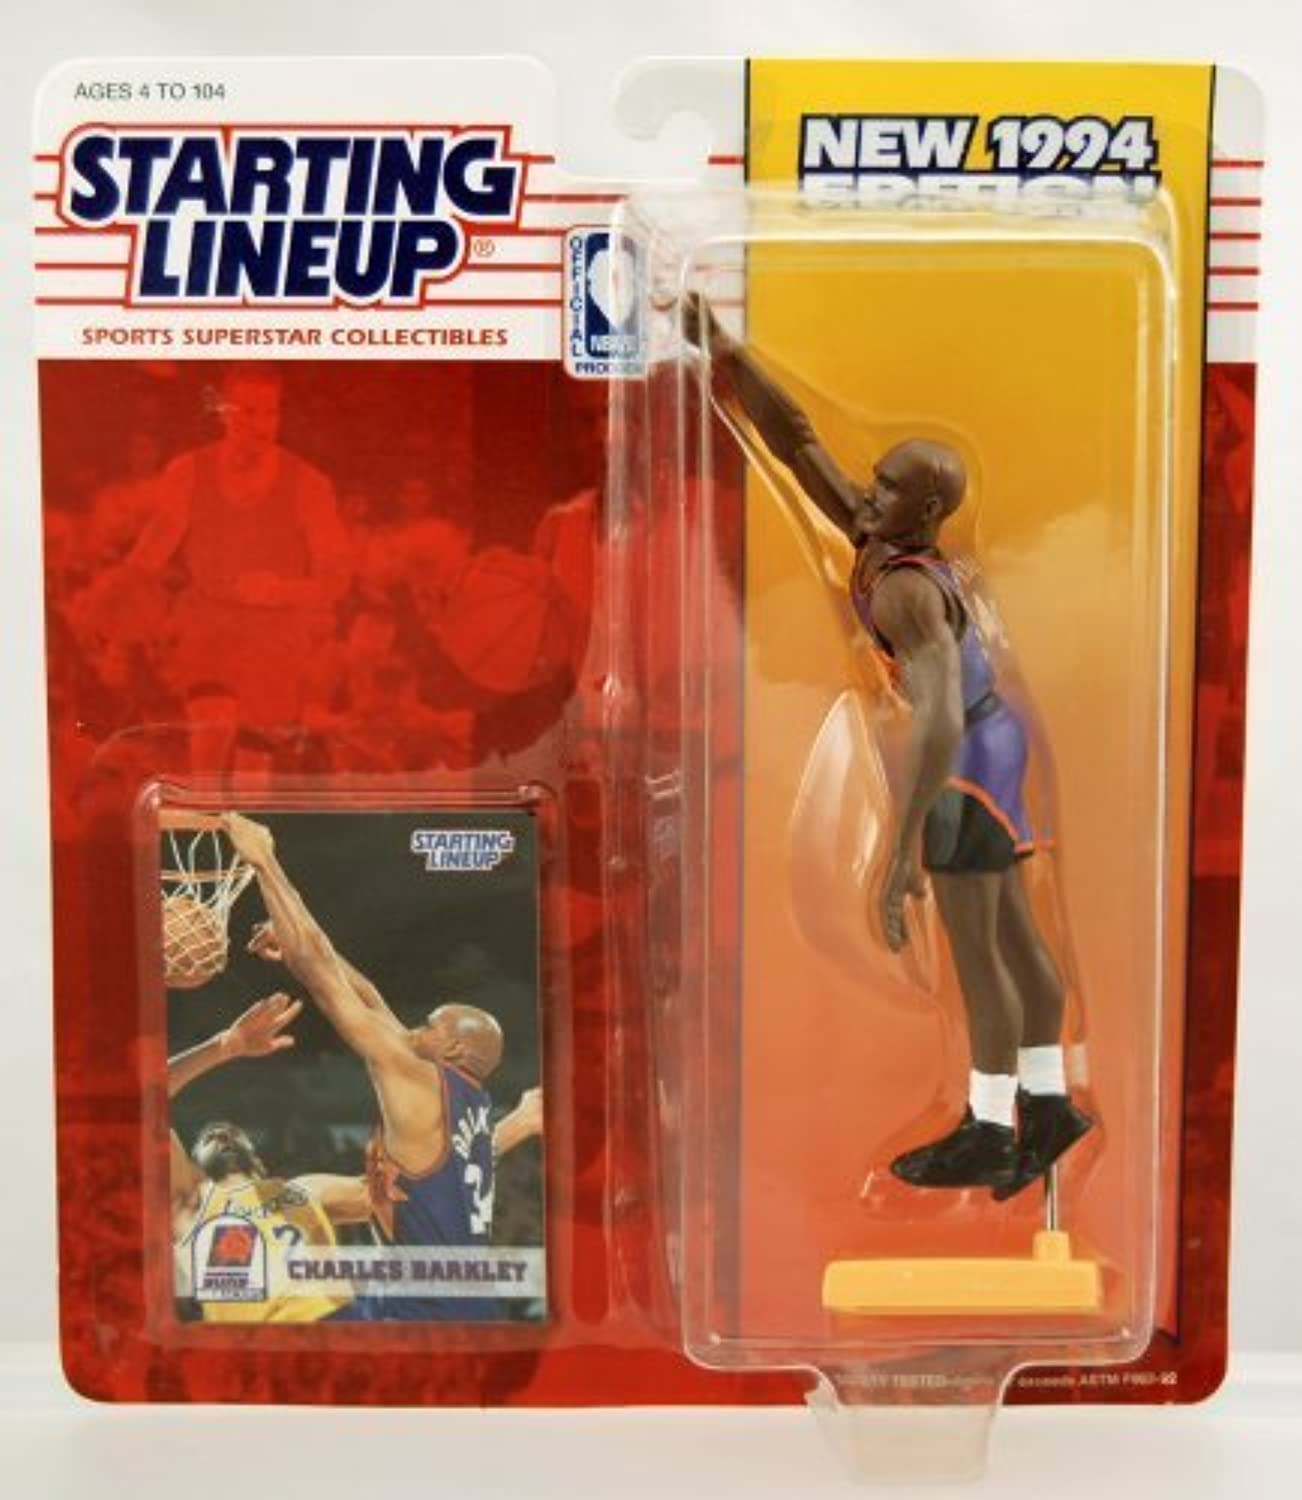 Starting Lineup Sports Superstar Collectibles Charles Barkley 1994 by Starting Line Up